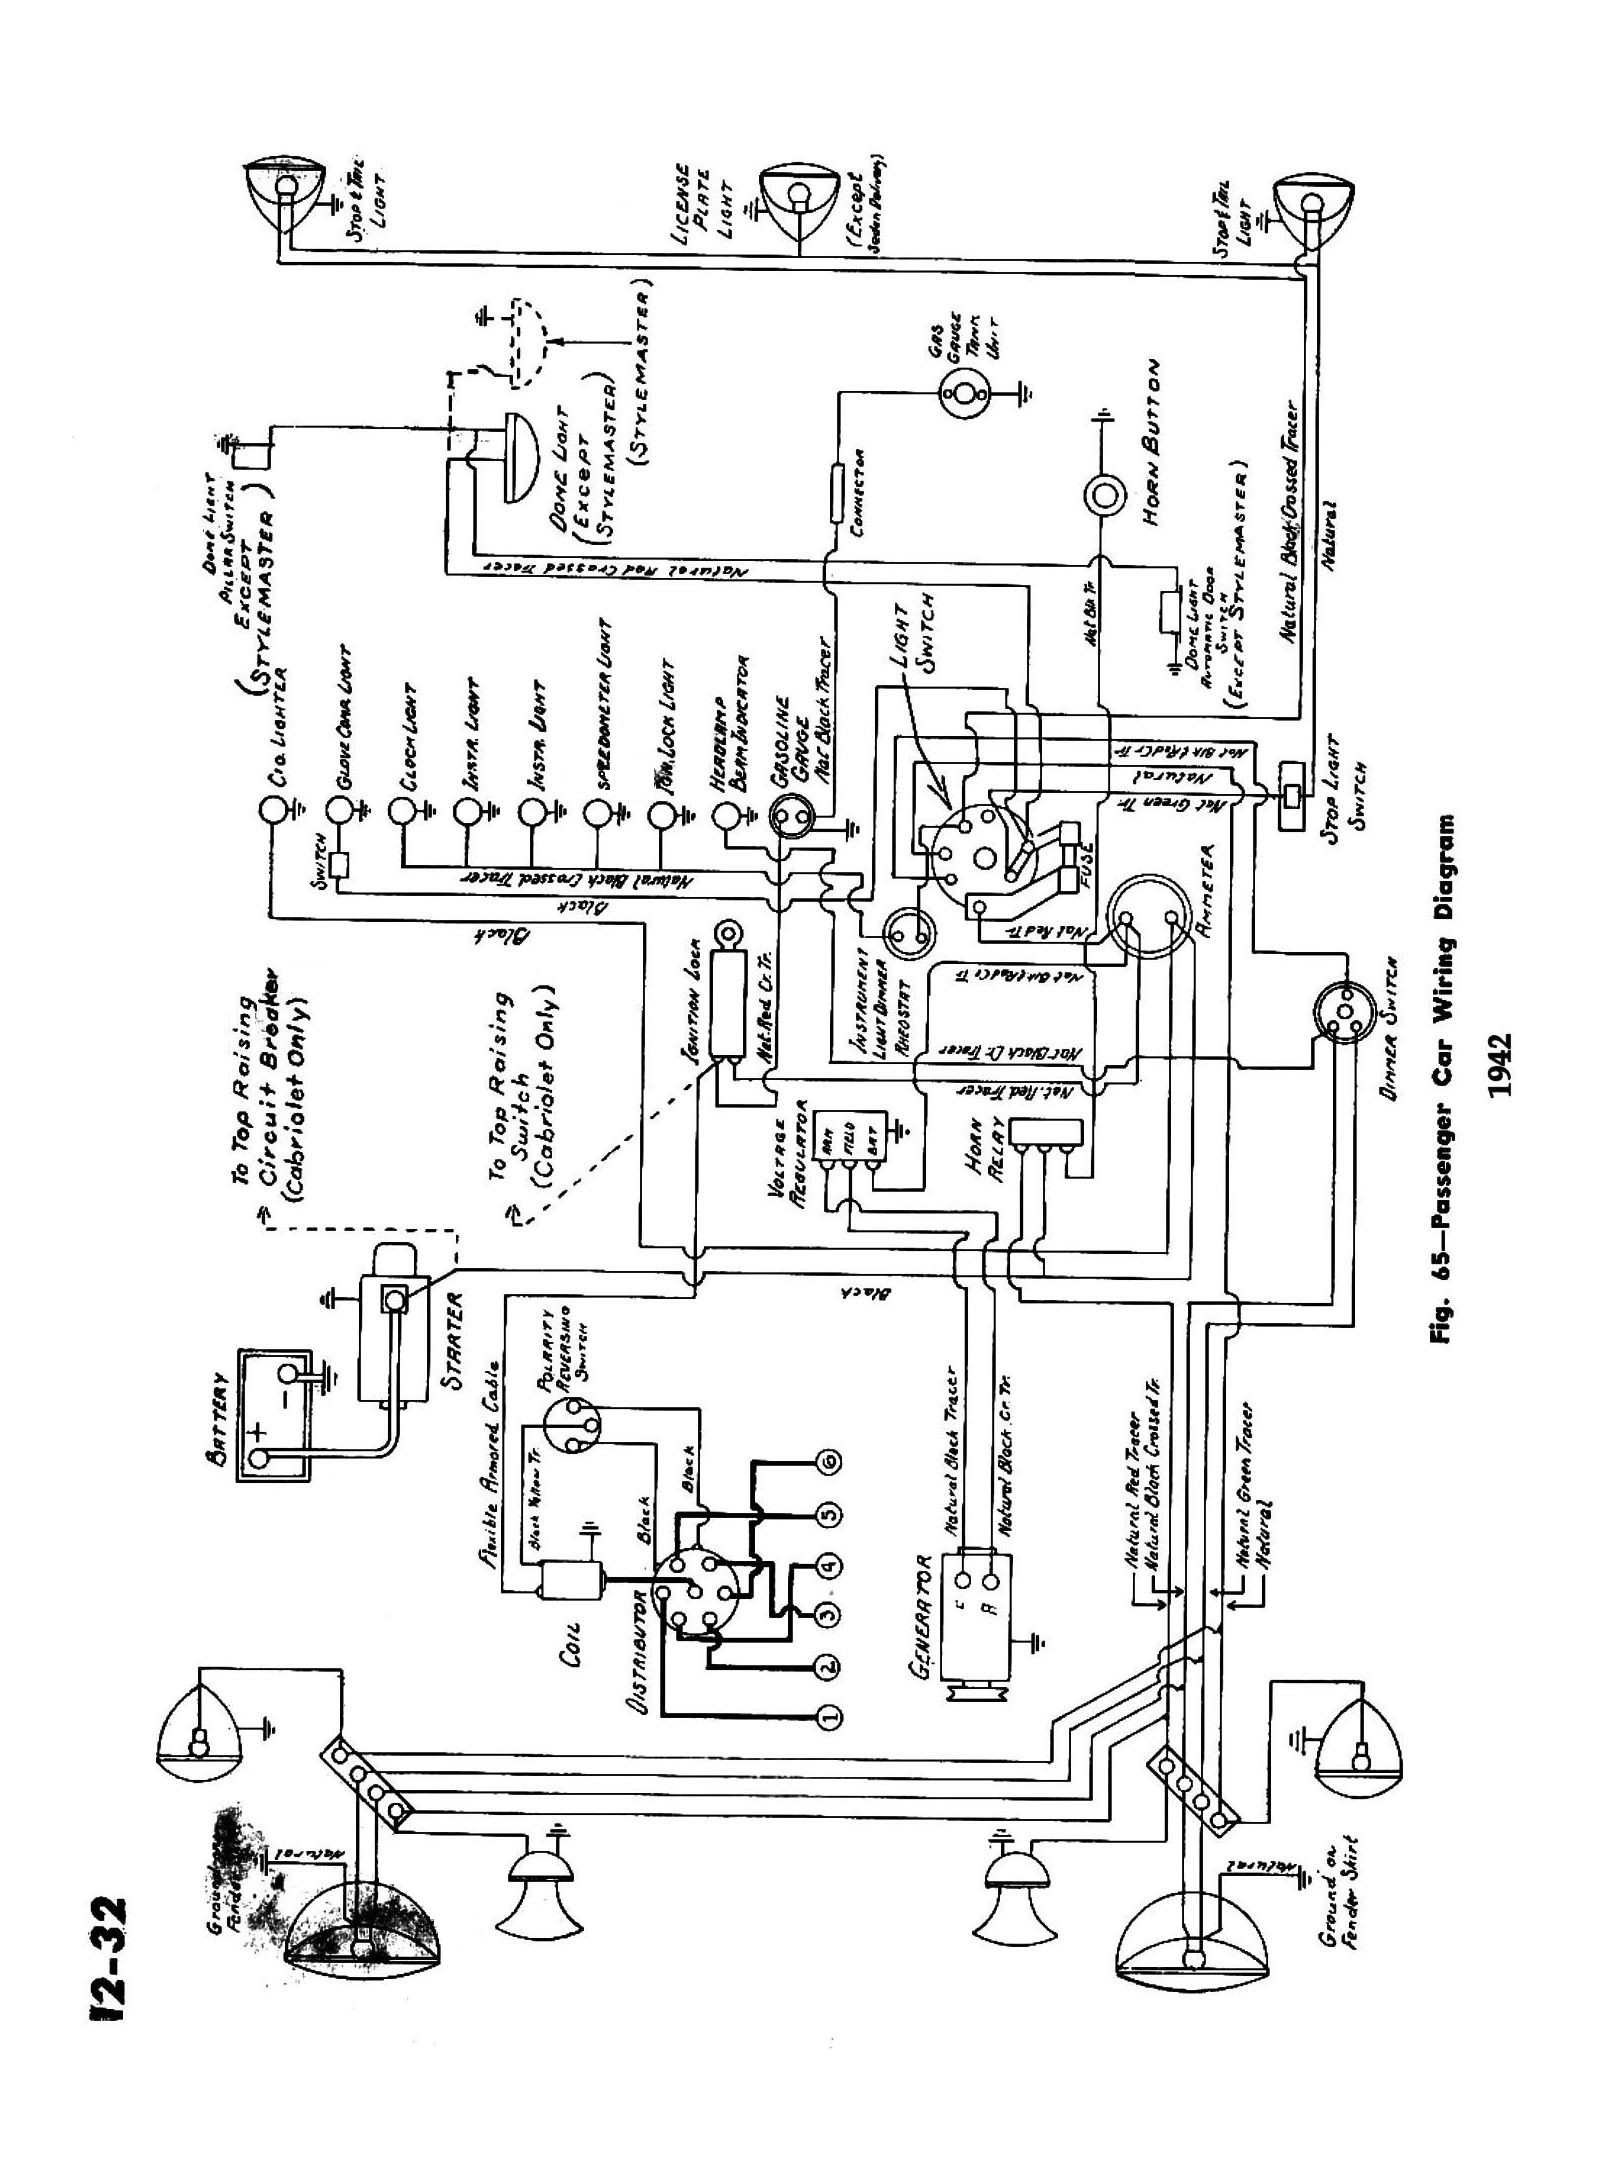 42csm1232a 1950 chevy truck wiring harness on 1950 download wirning diagrams wiring harness chevy colorado at bayanpartner.co